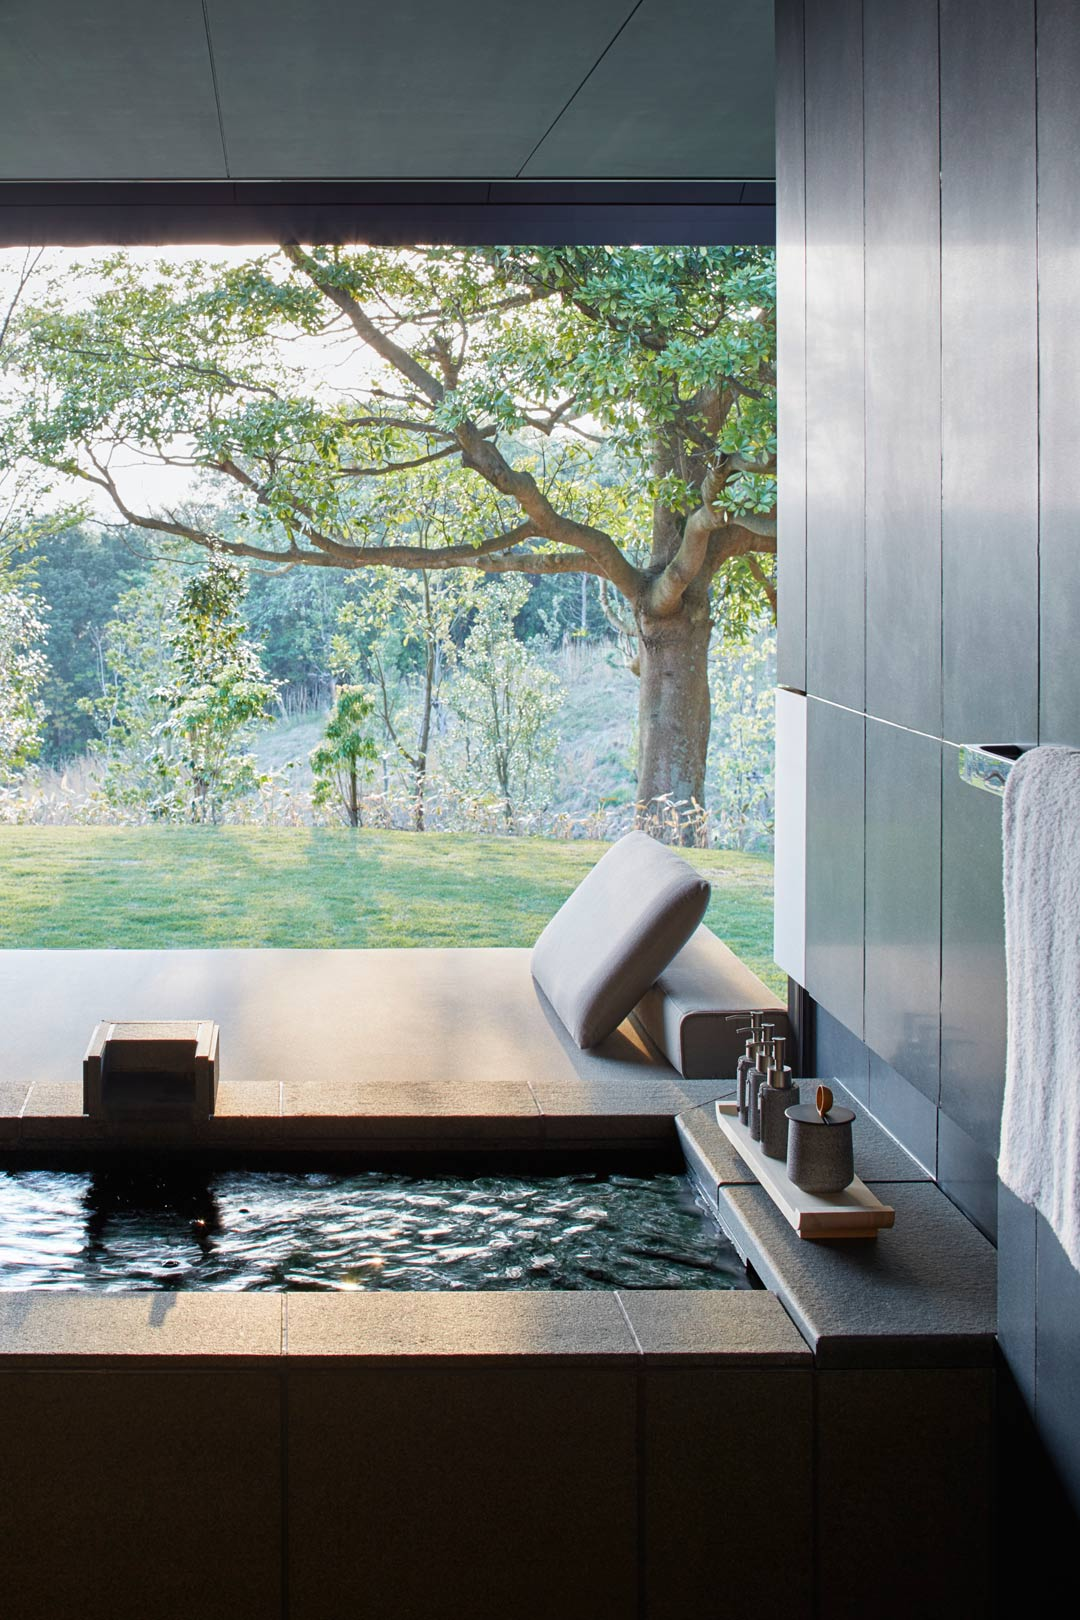 The two-bedroom Mori Villa beckons with private onsen facilities.